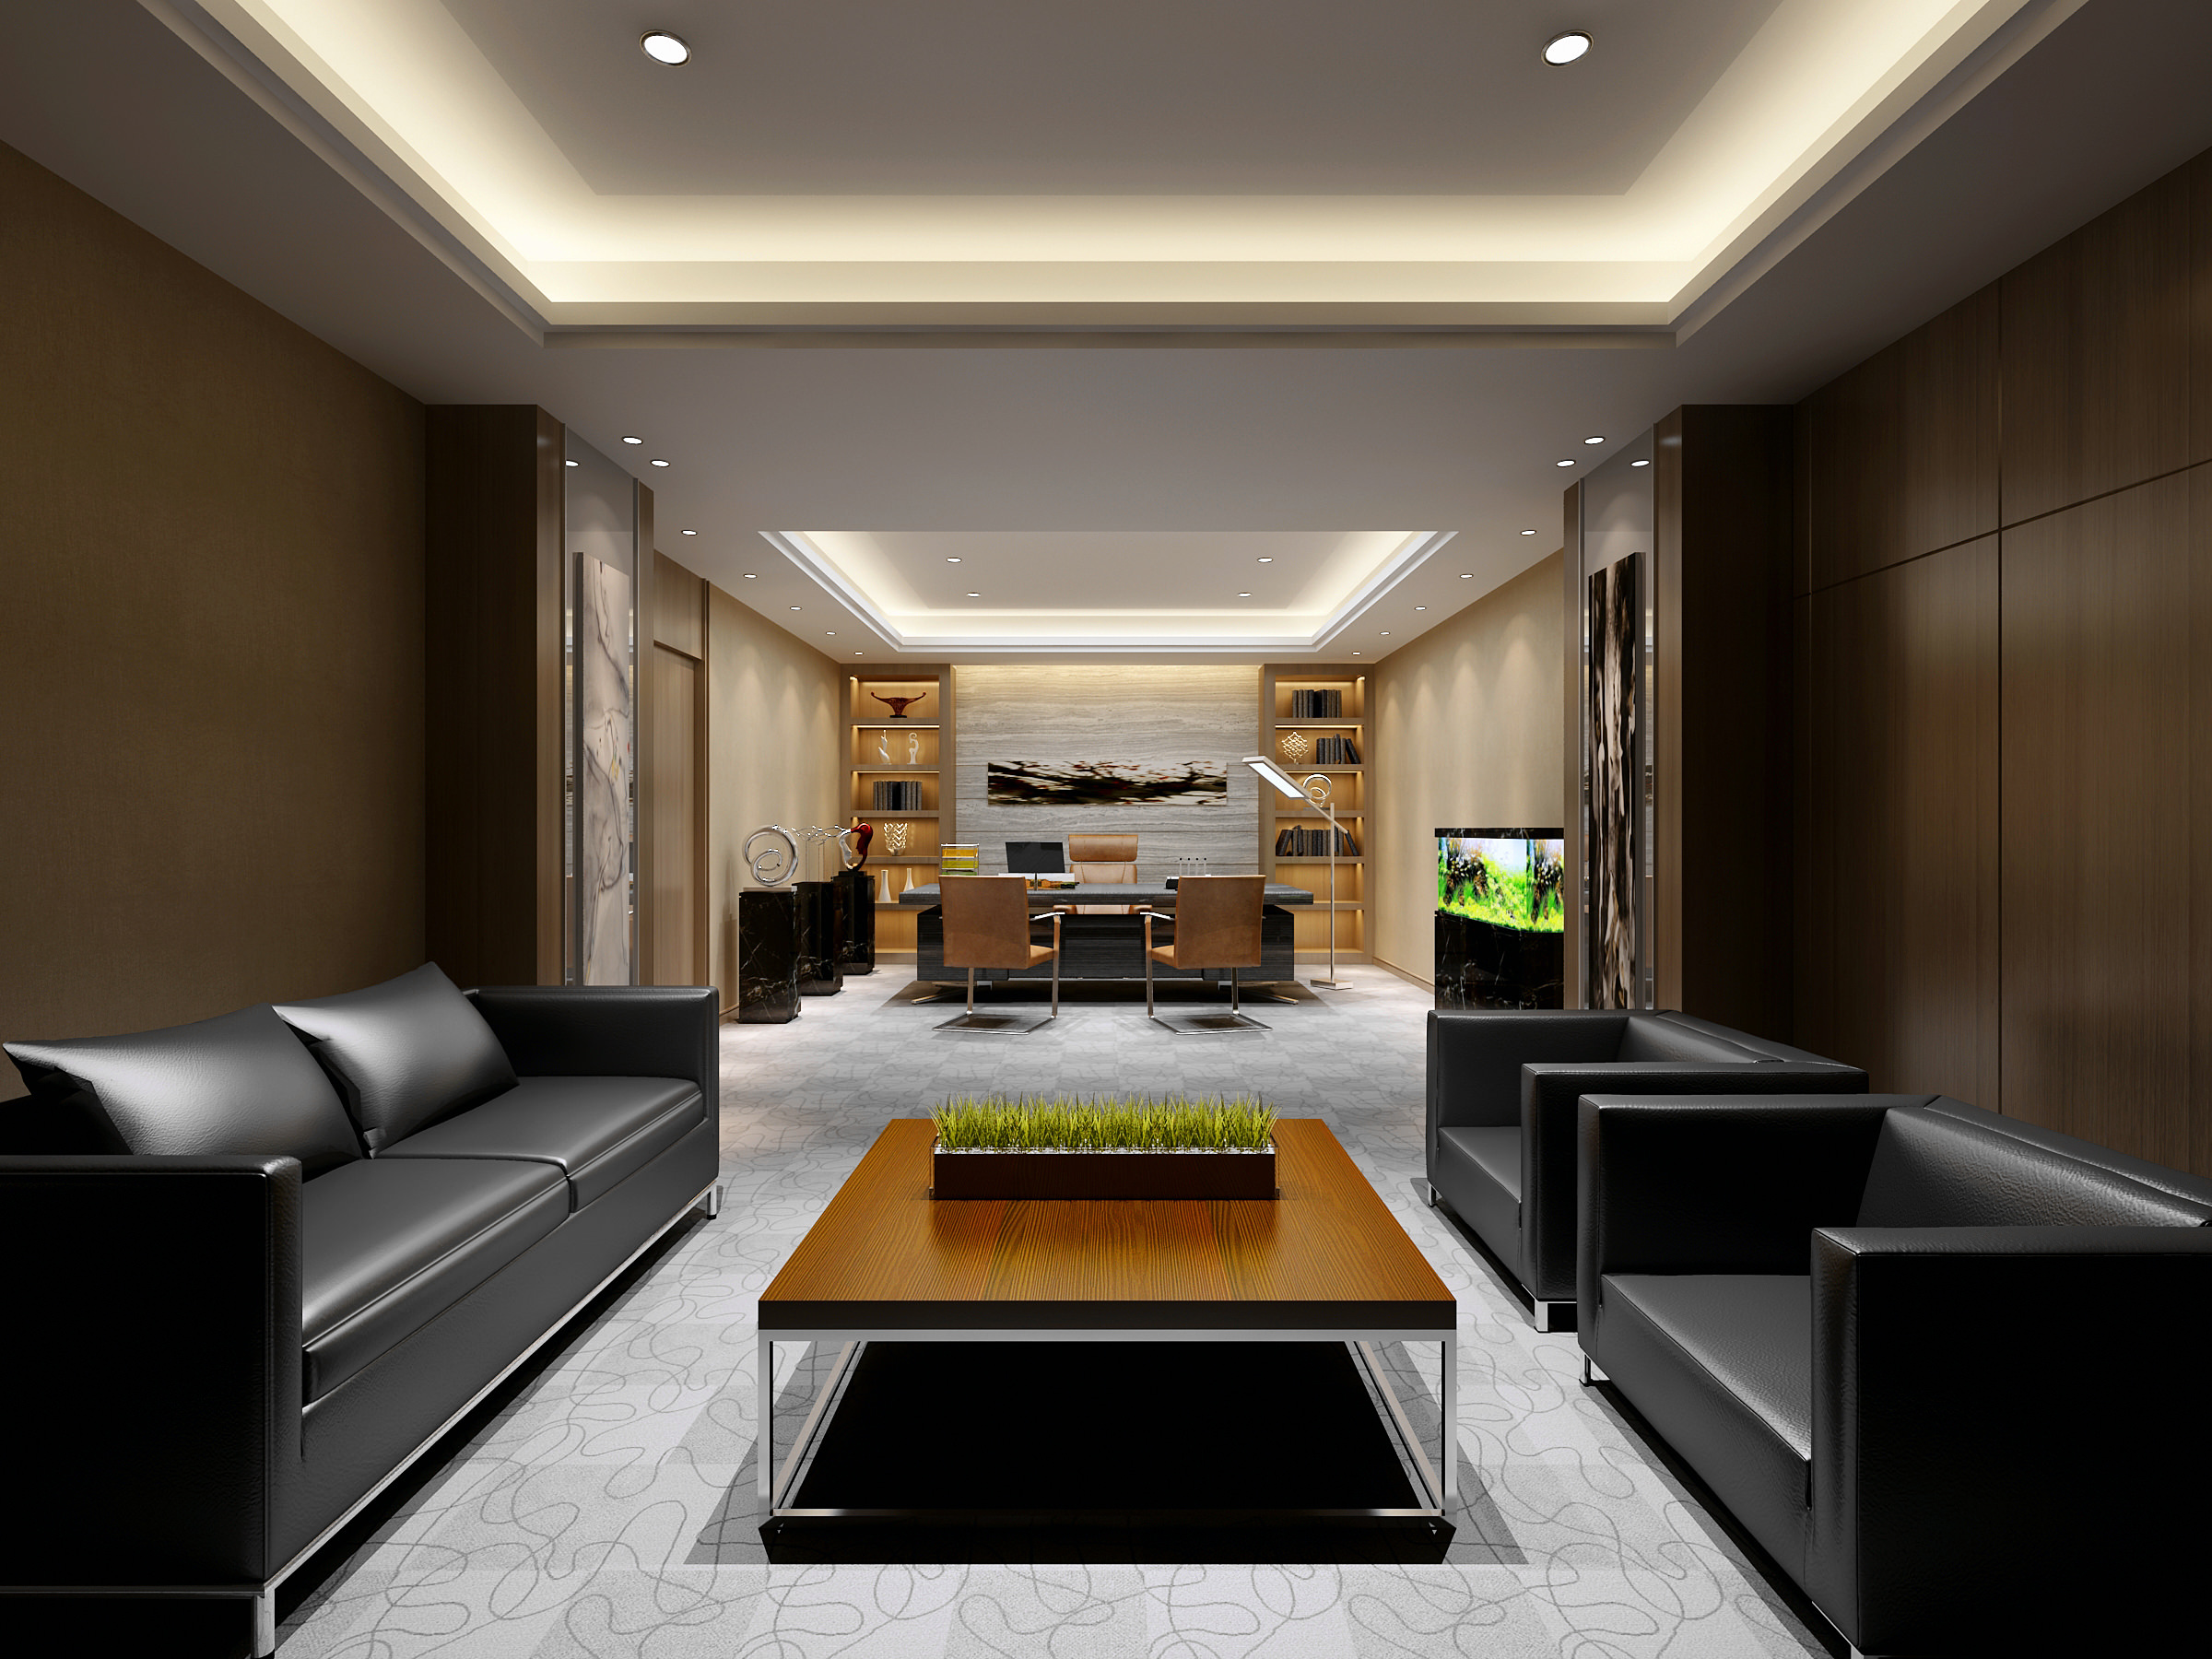 Luxurious Office Waiting Room With Marble Floor Fully Furnished Model Max 1